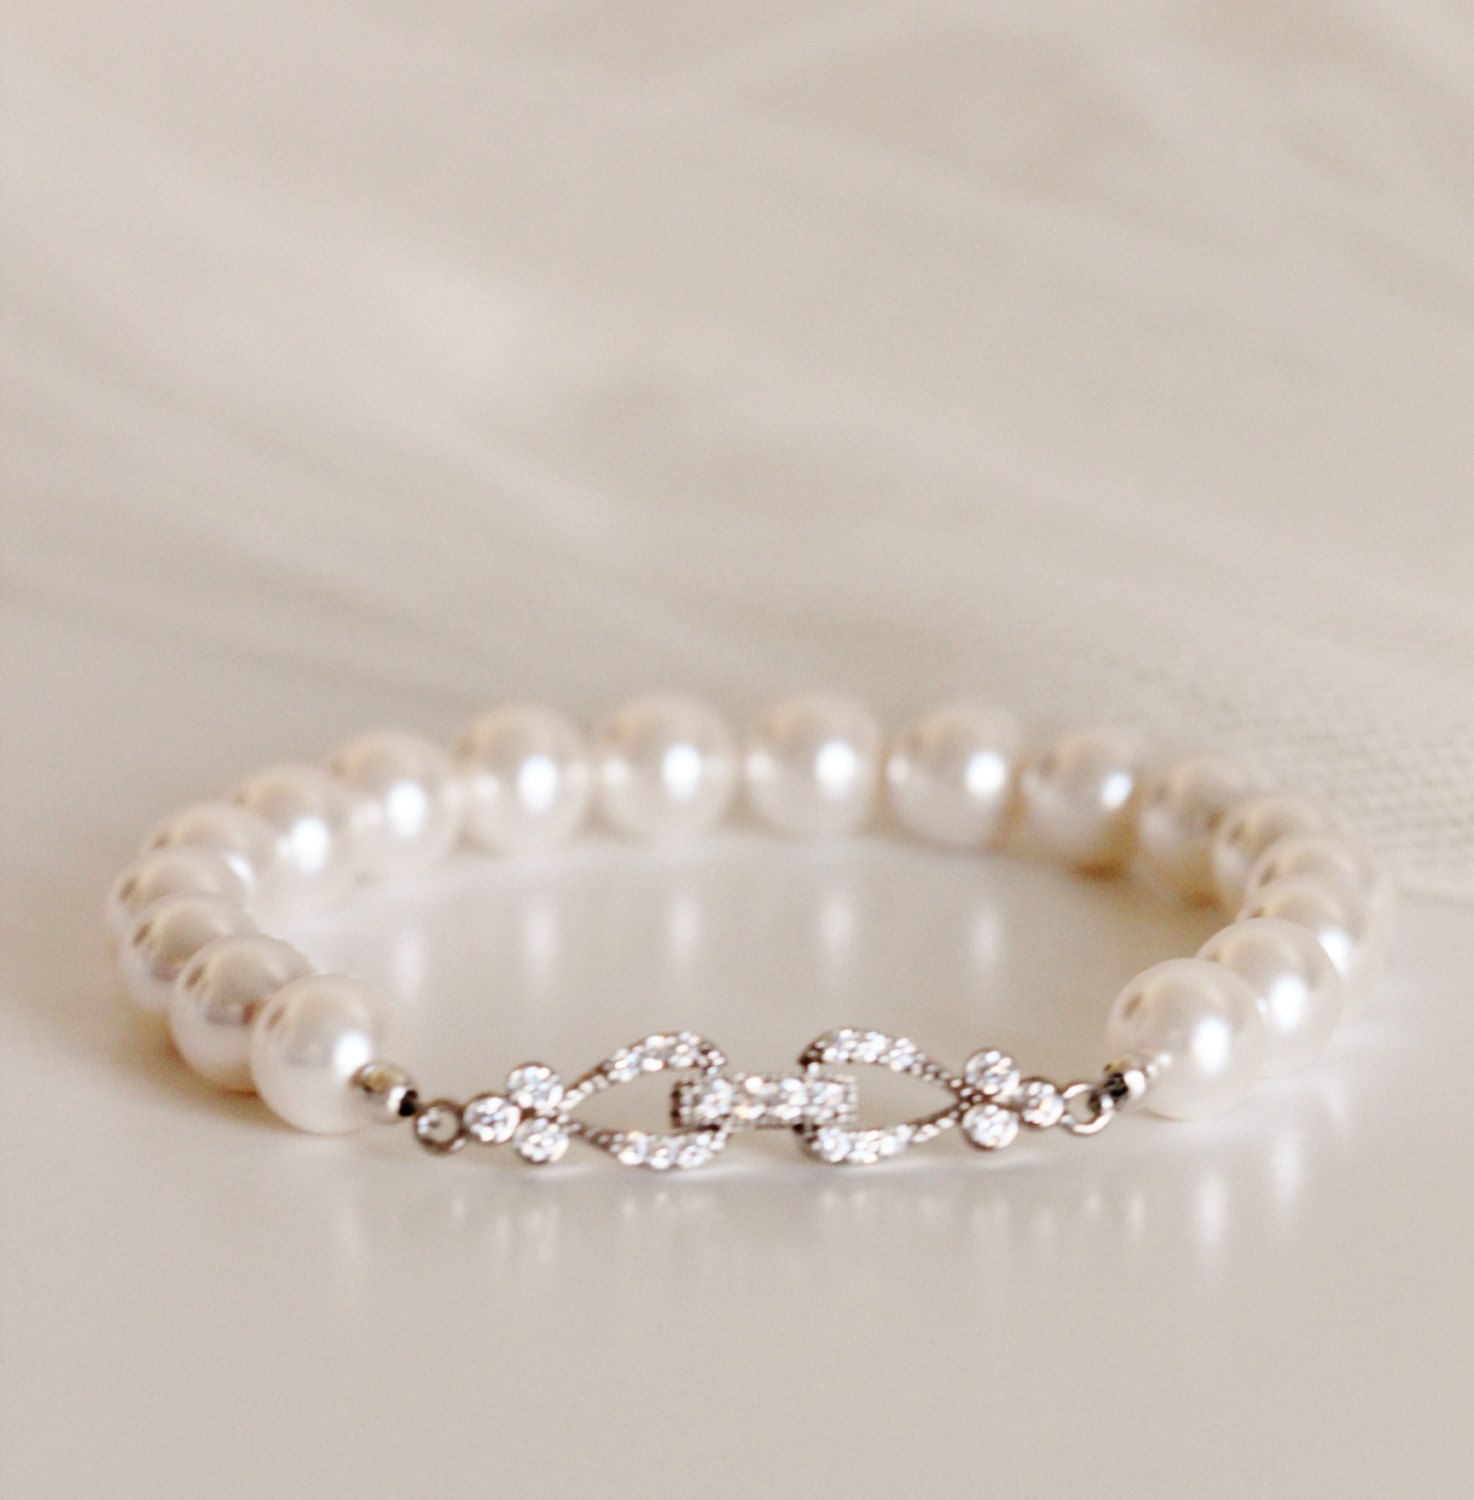 Bridal Bracelet Pearl Wedding Jewelry Bridesmaid Bracelet Gift